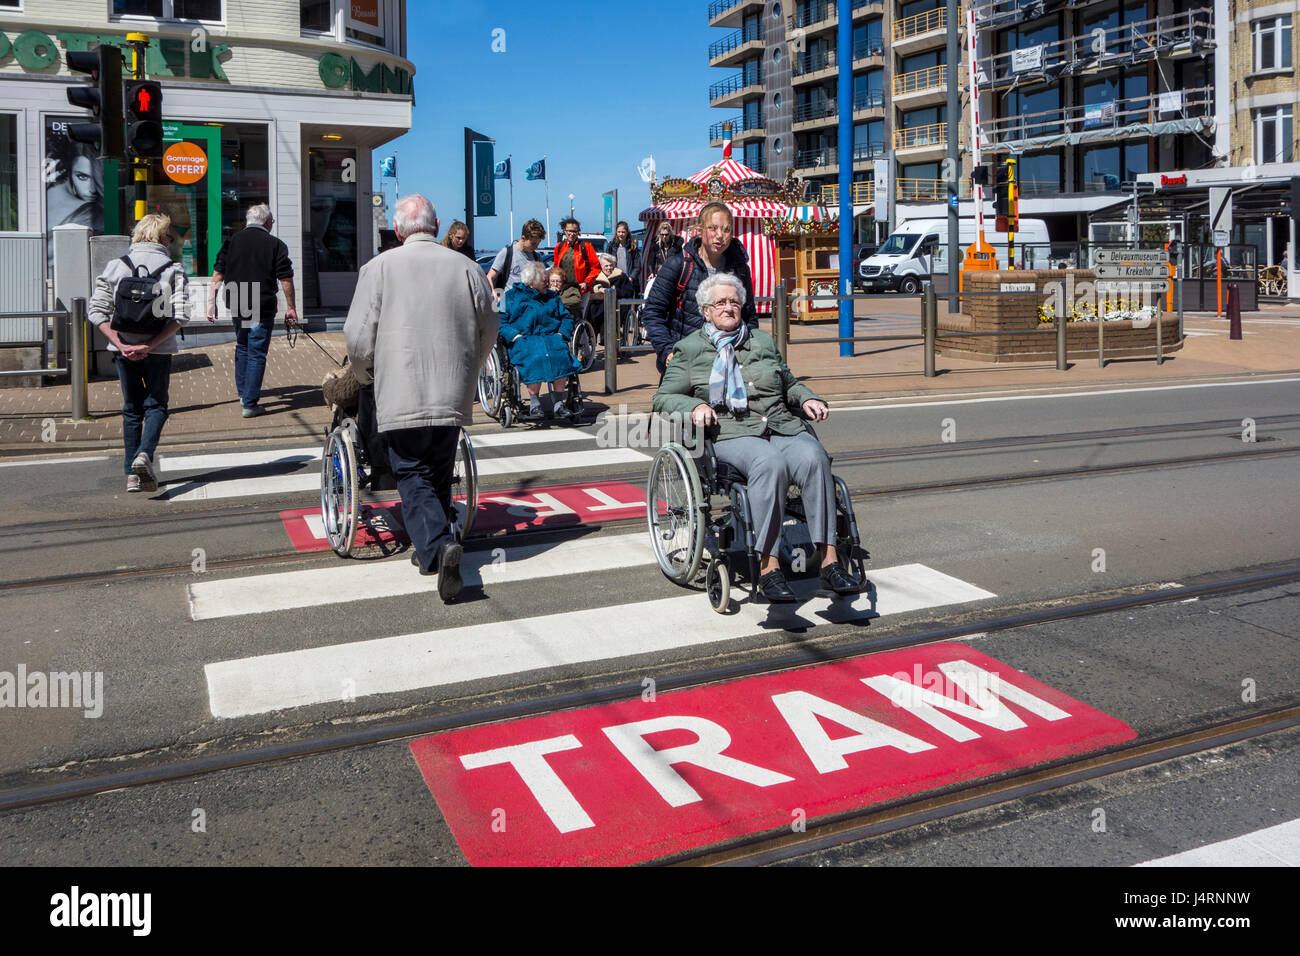 group-of-disabled-elderly-people-in-whee